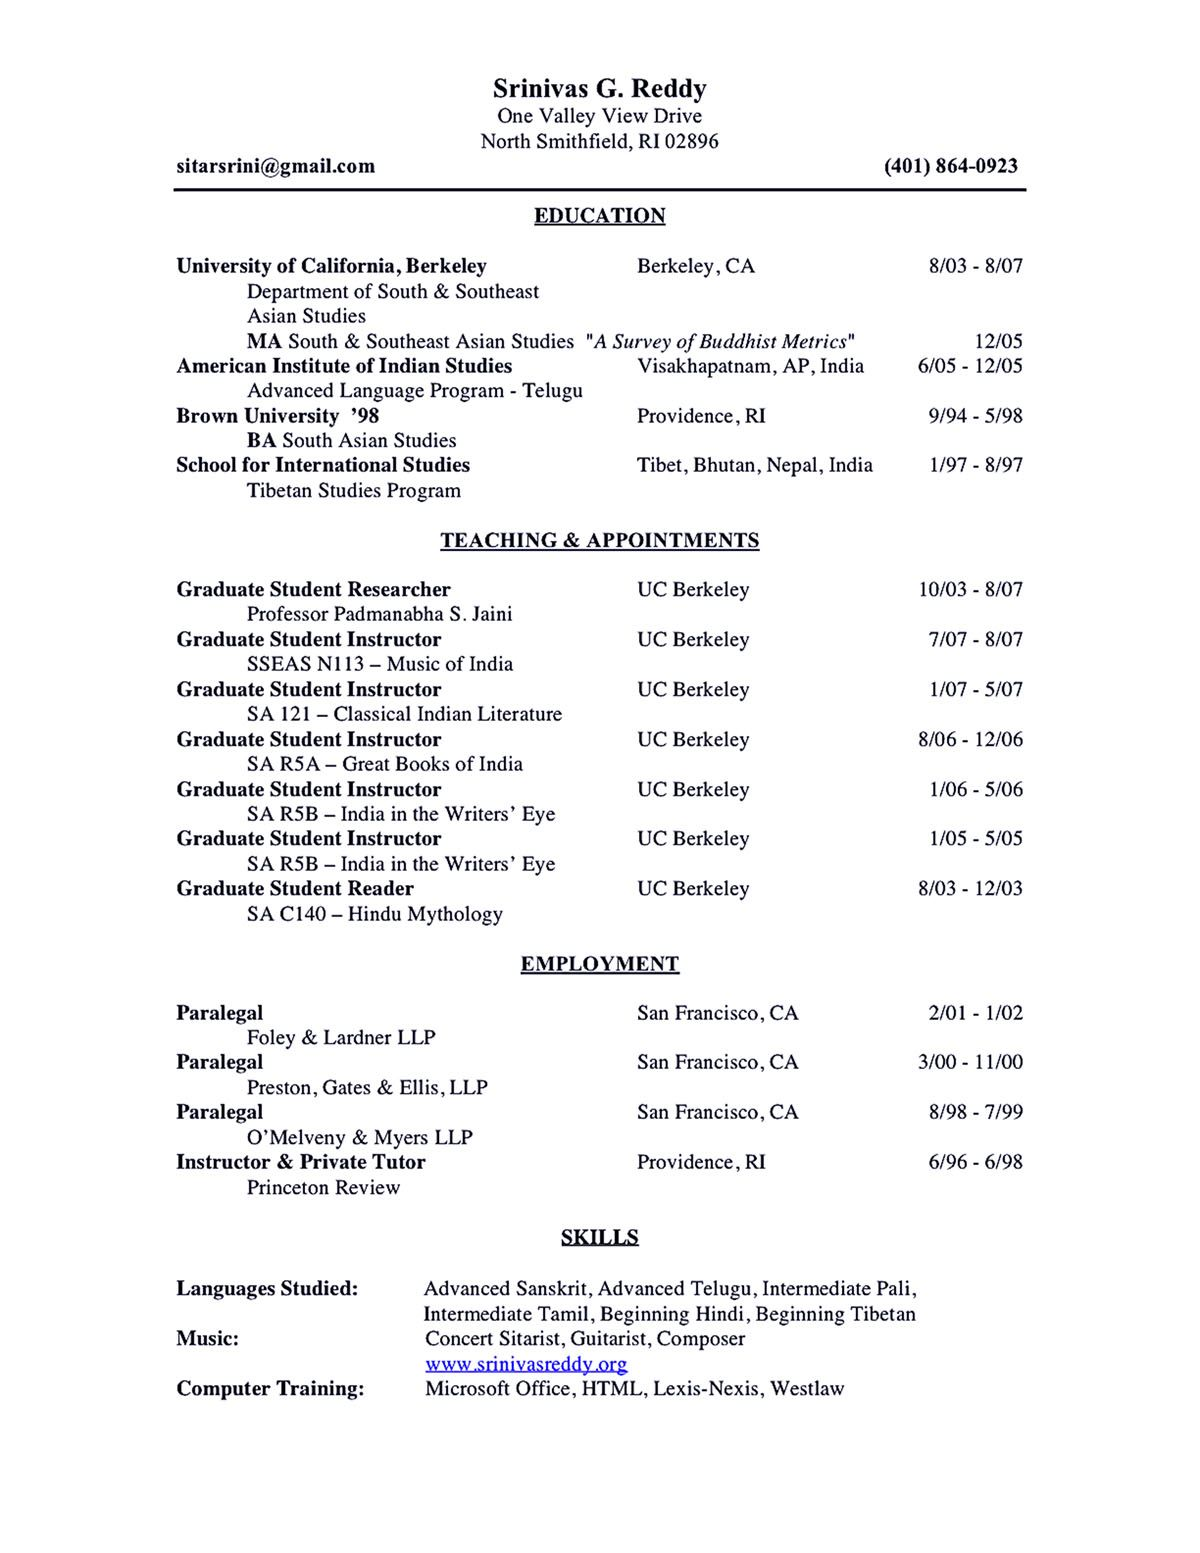 Academic Resume Template Academic Resume Sample Shows You How To Make Academic Resume